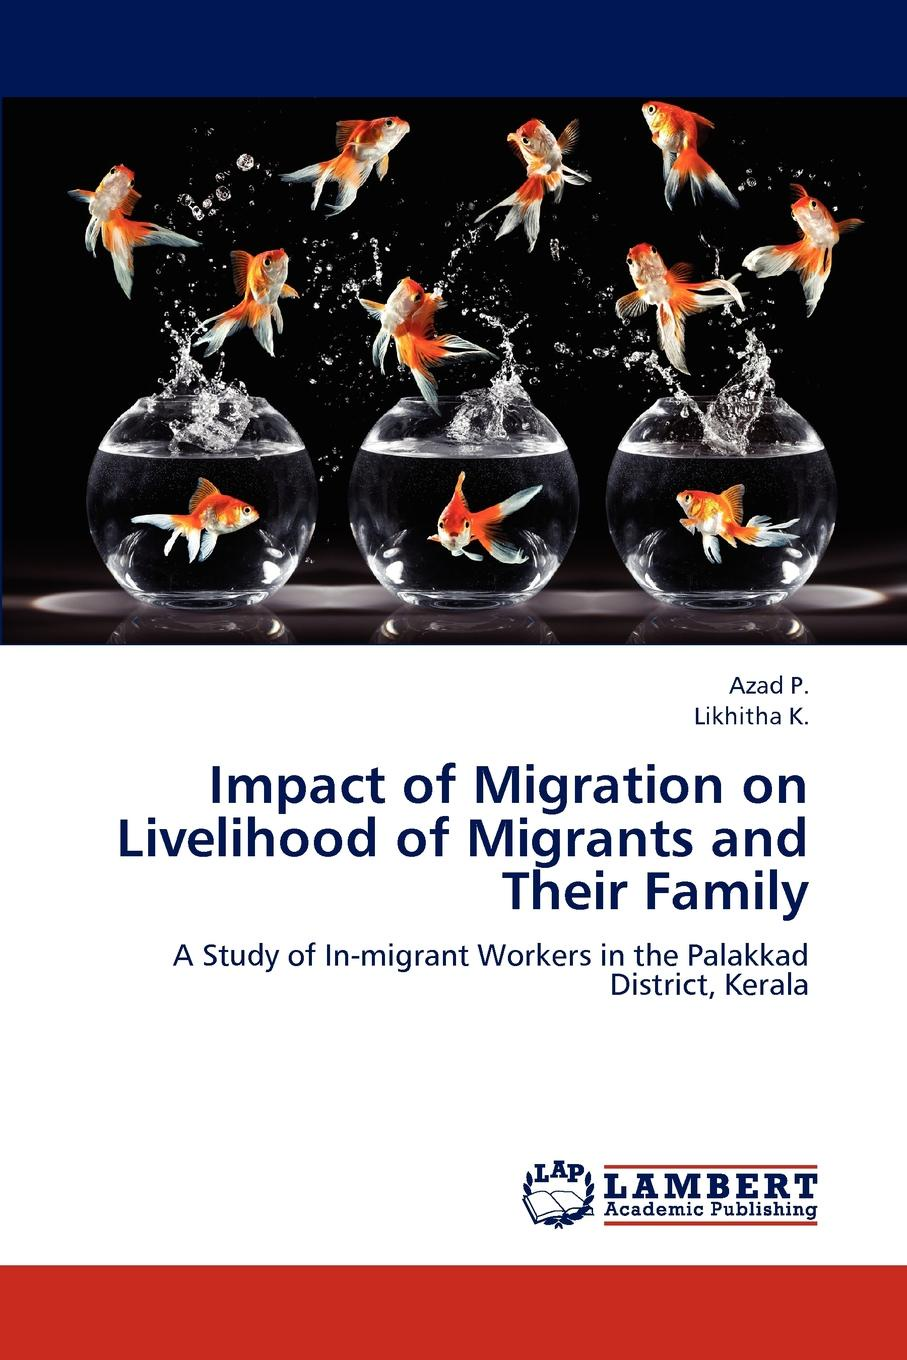 Фото - Azad P., Likhitha K. Impact of Migration on Livelihood of Migrants and Their Family agrarian distress and changing rural livelihoods in kerala